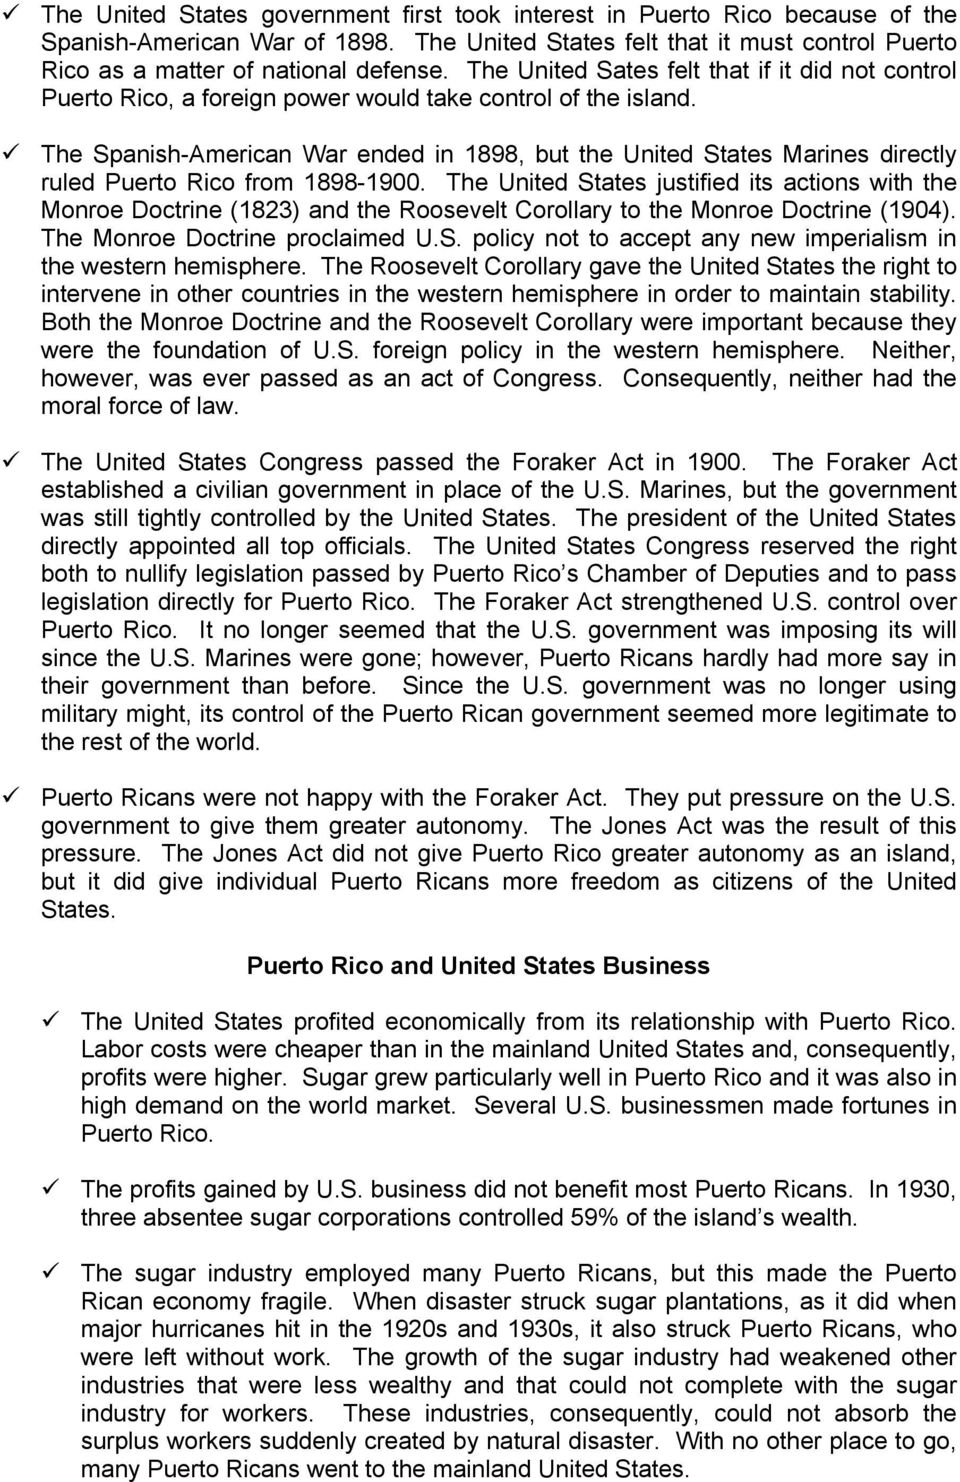 The Spanish-American War ended in 1898, but the United States Marines directly ruled Puerto Rico from 1898-1900.